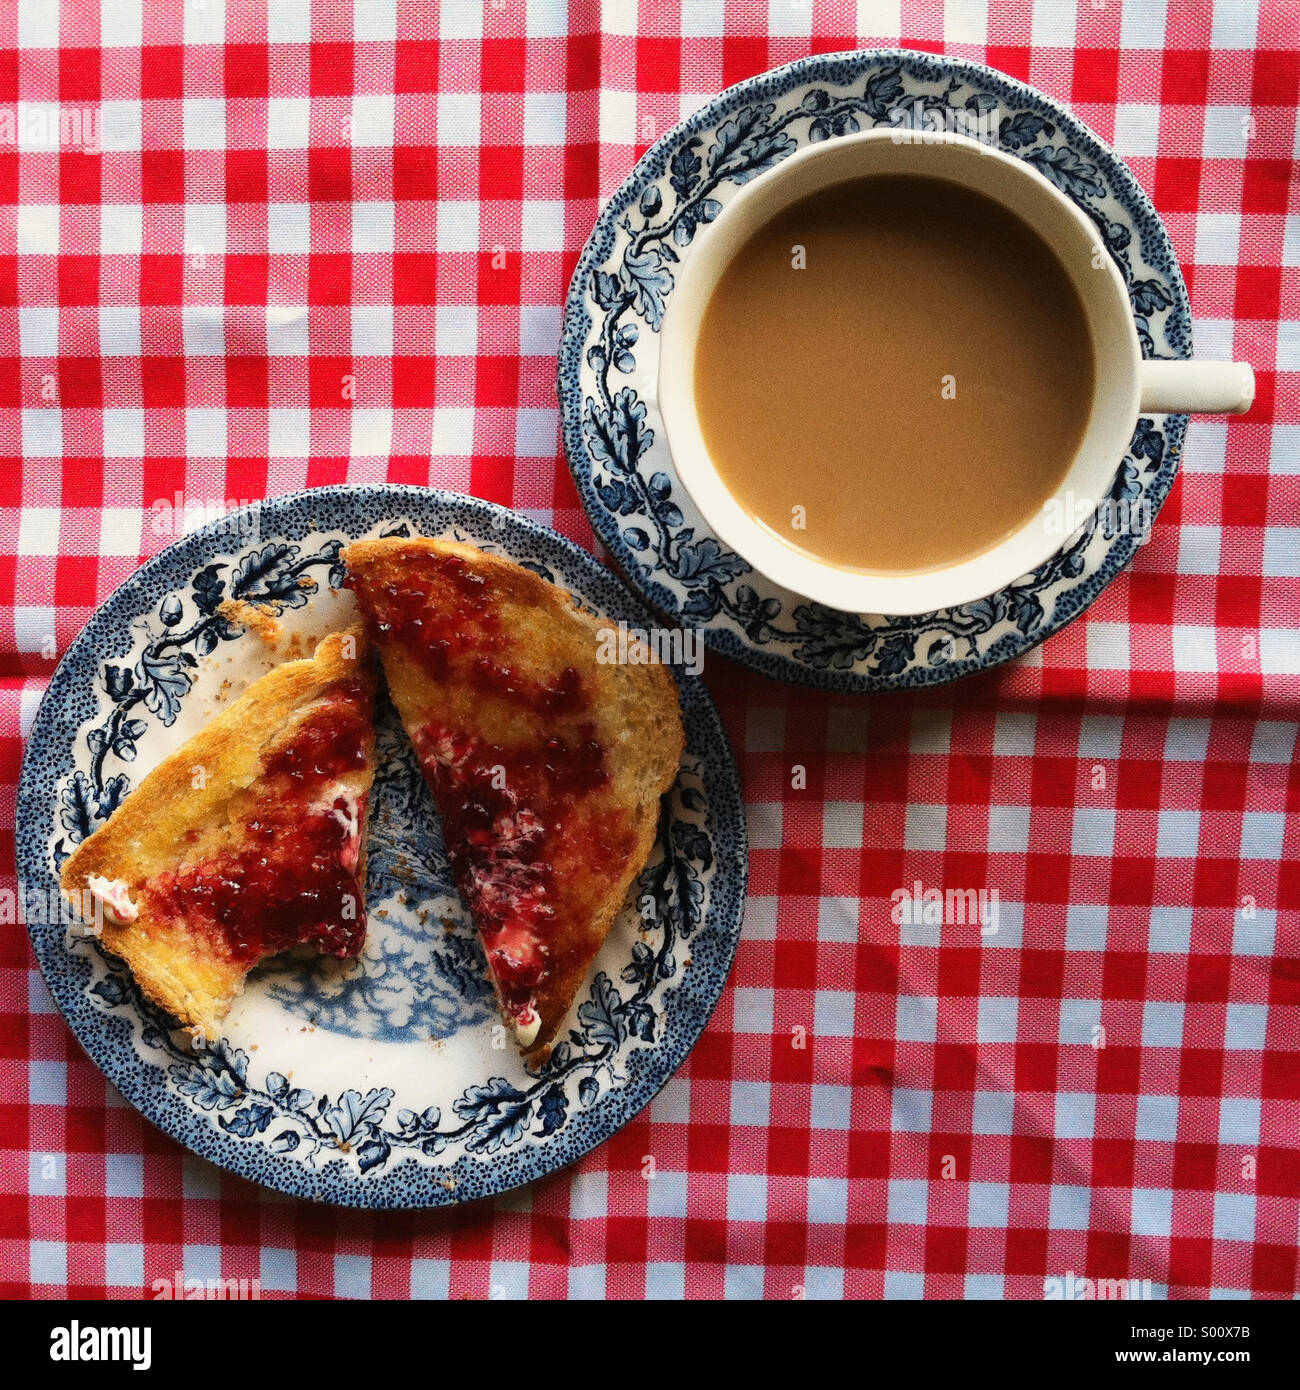 Tea and toast in vintage blue and white crockery, on a red and white gingham tablecloth - Stock Image